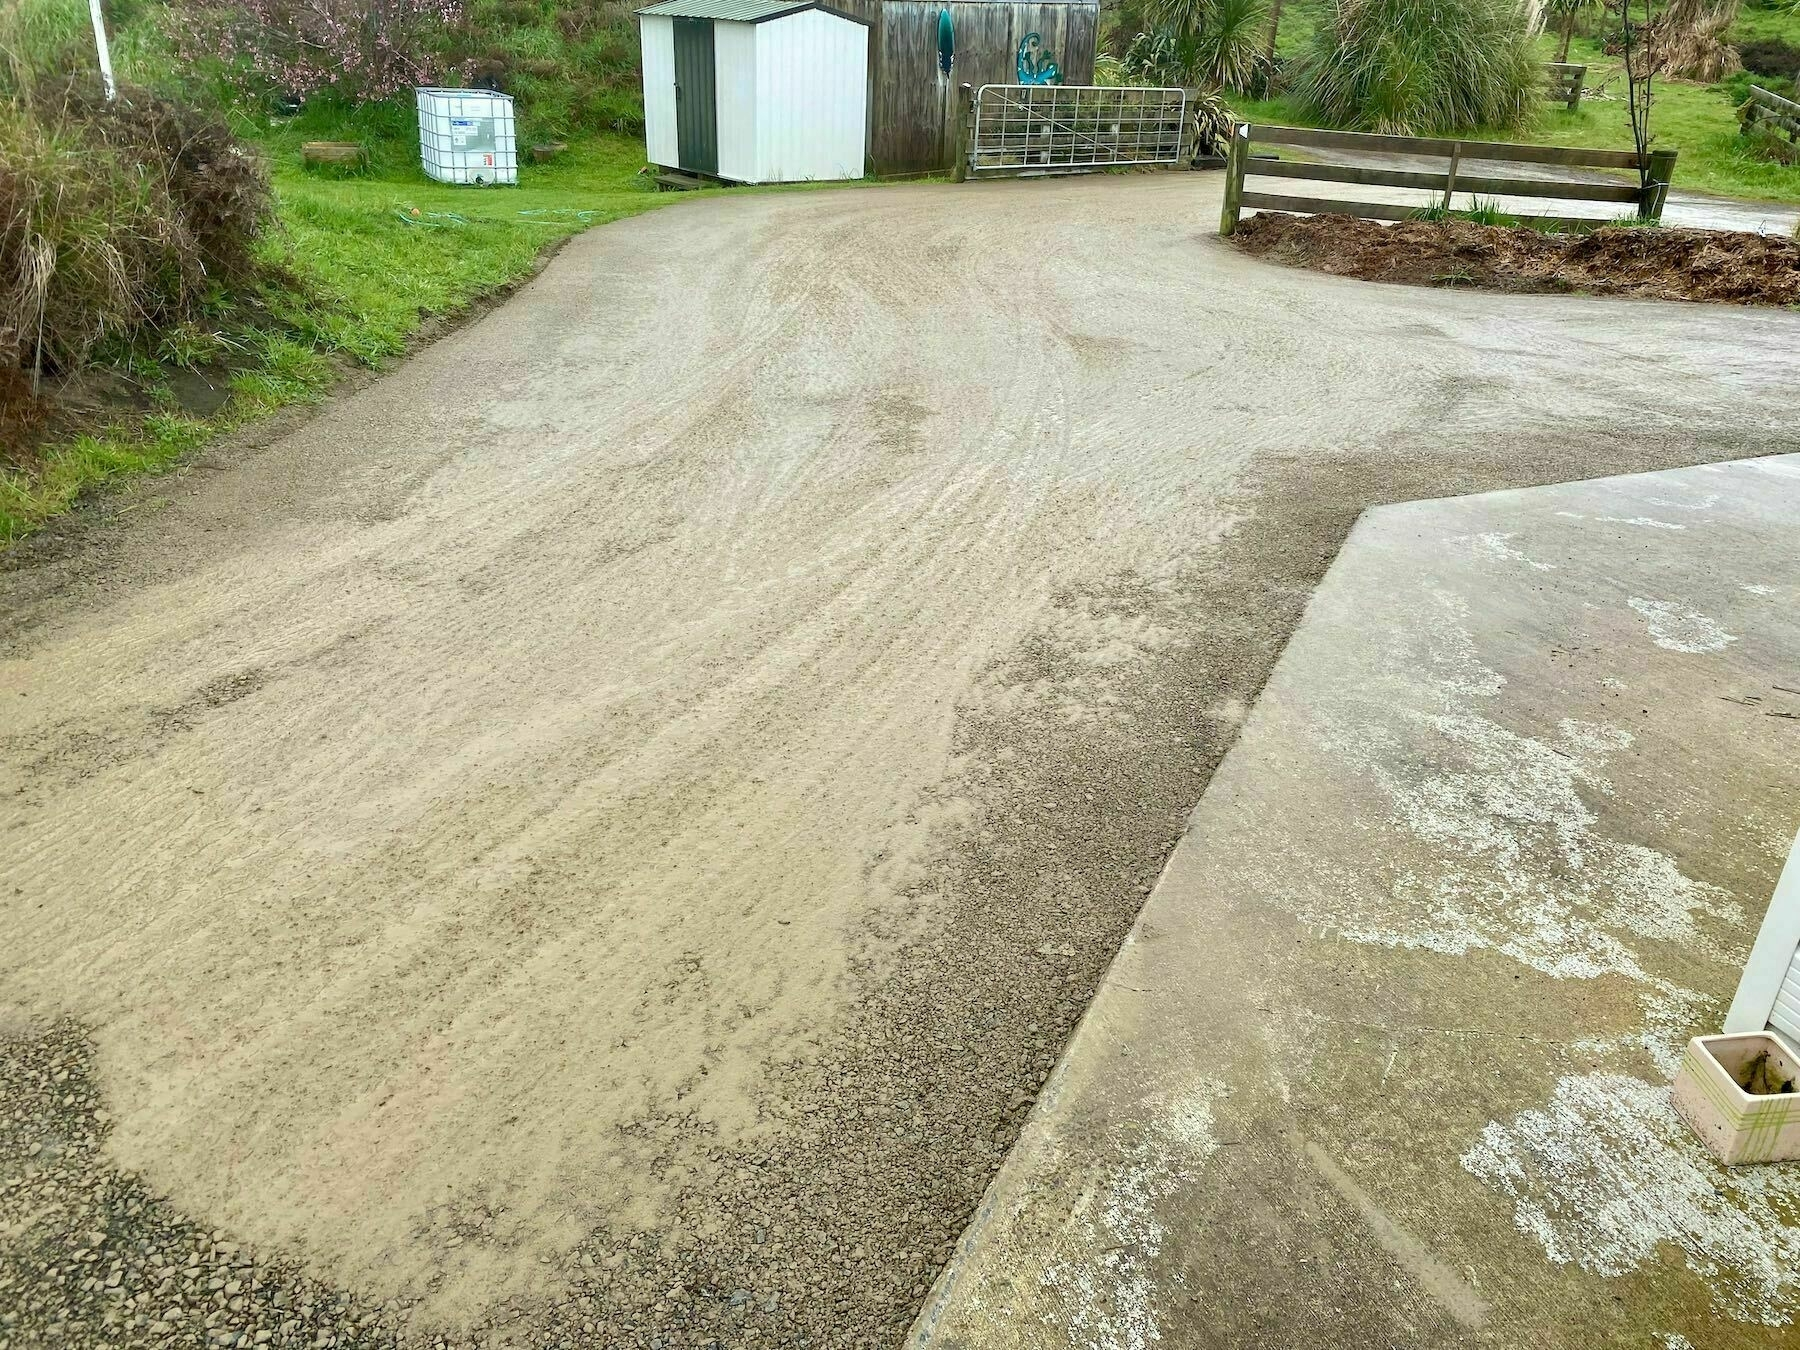 Our resurfaced driveway section.